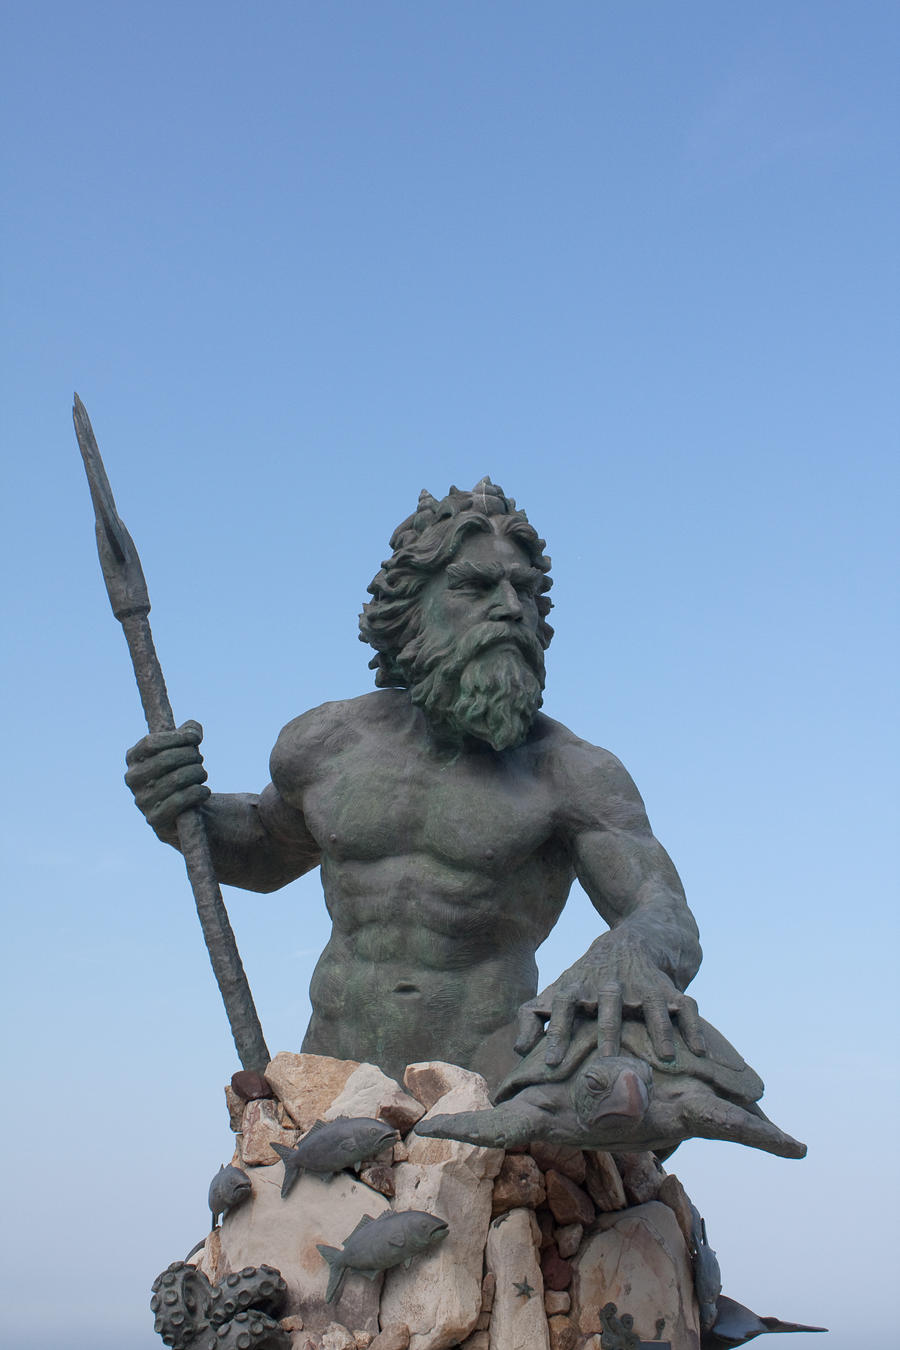 King Neptune Statue 7 by MartyCASH on DeviantArt